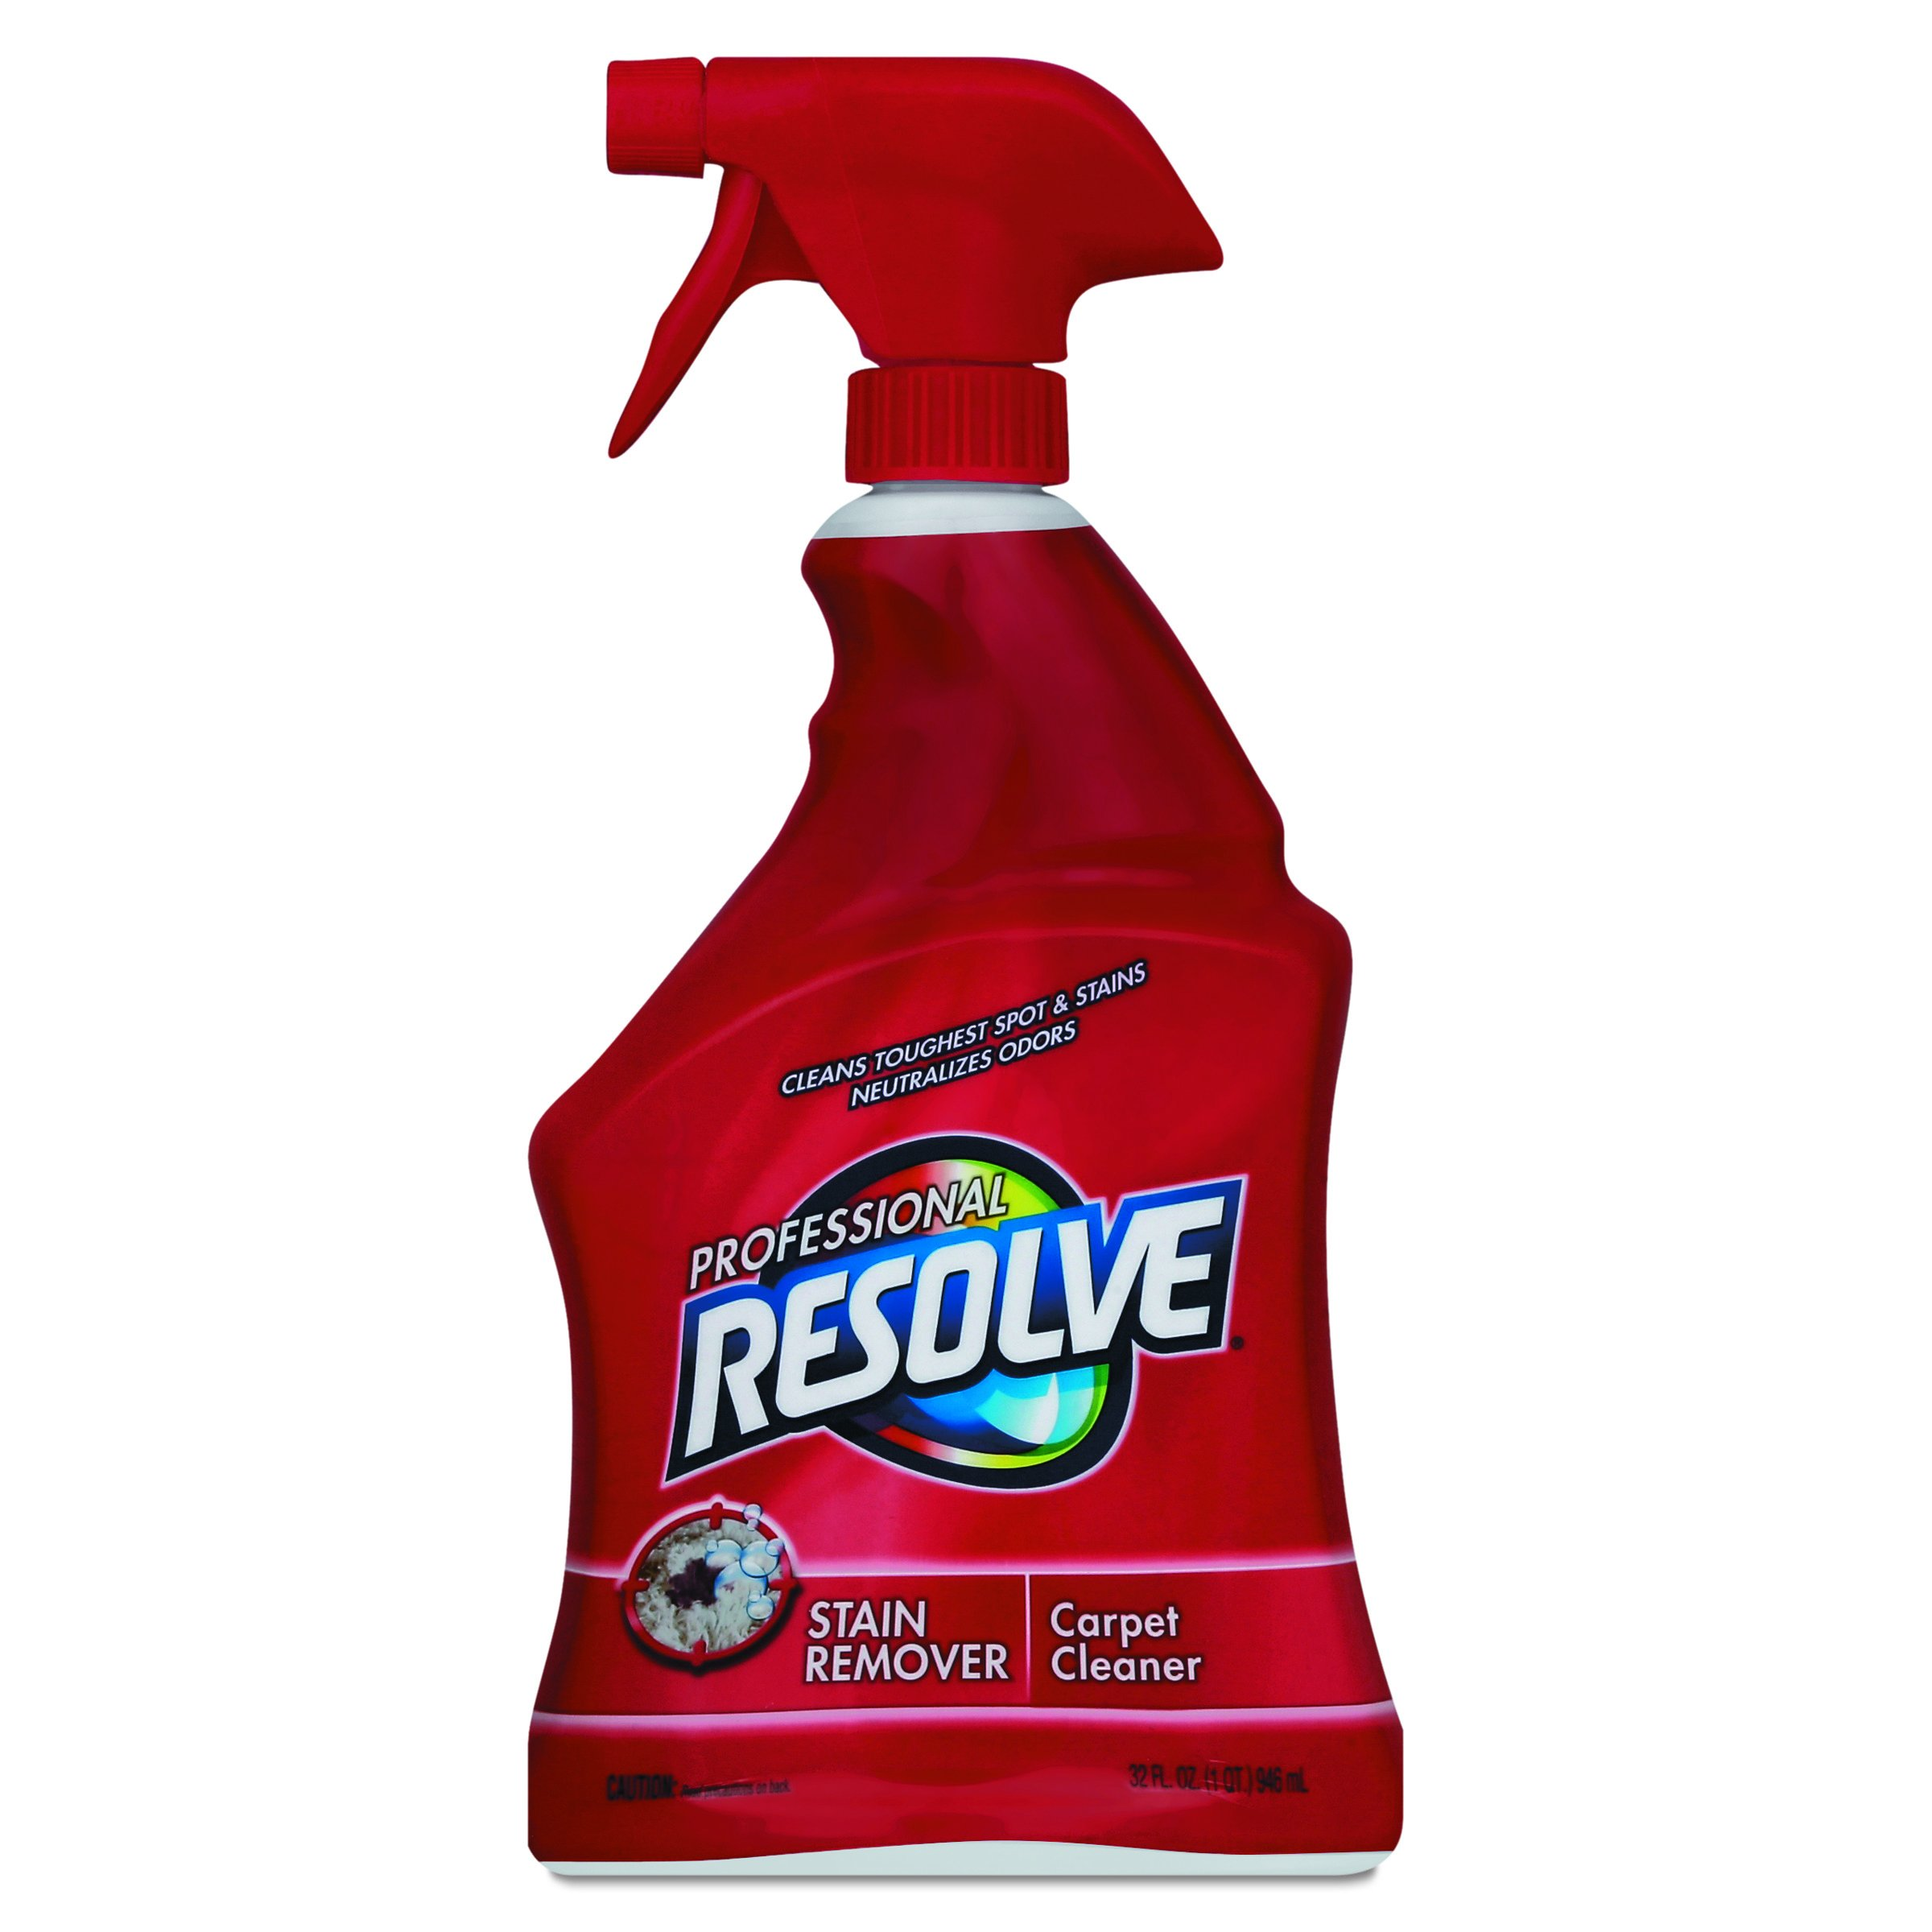 Professional RESOLVE 97402CT Carpet Cleaner, 32oz Spray Bottles (Case of 12) by Resolve